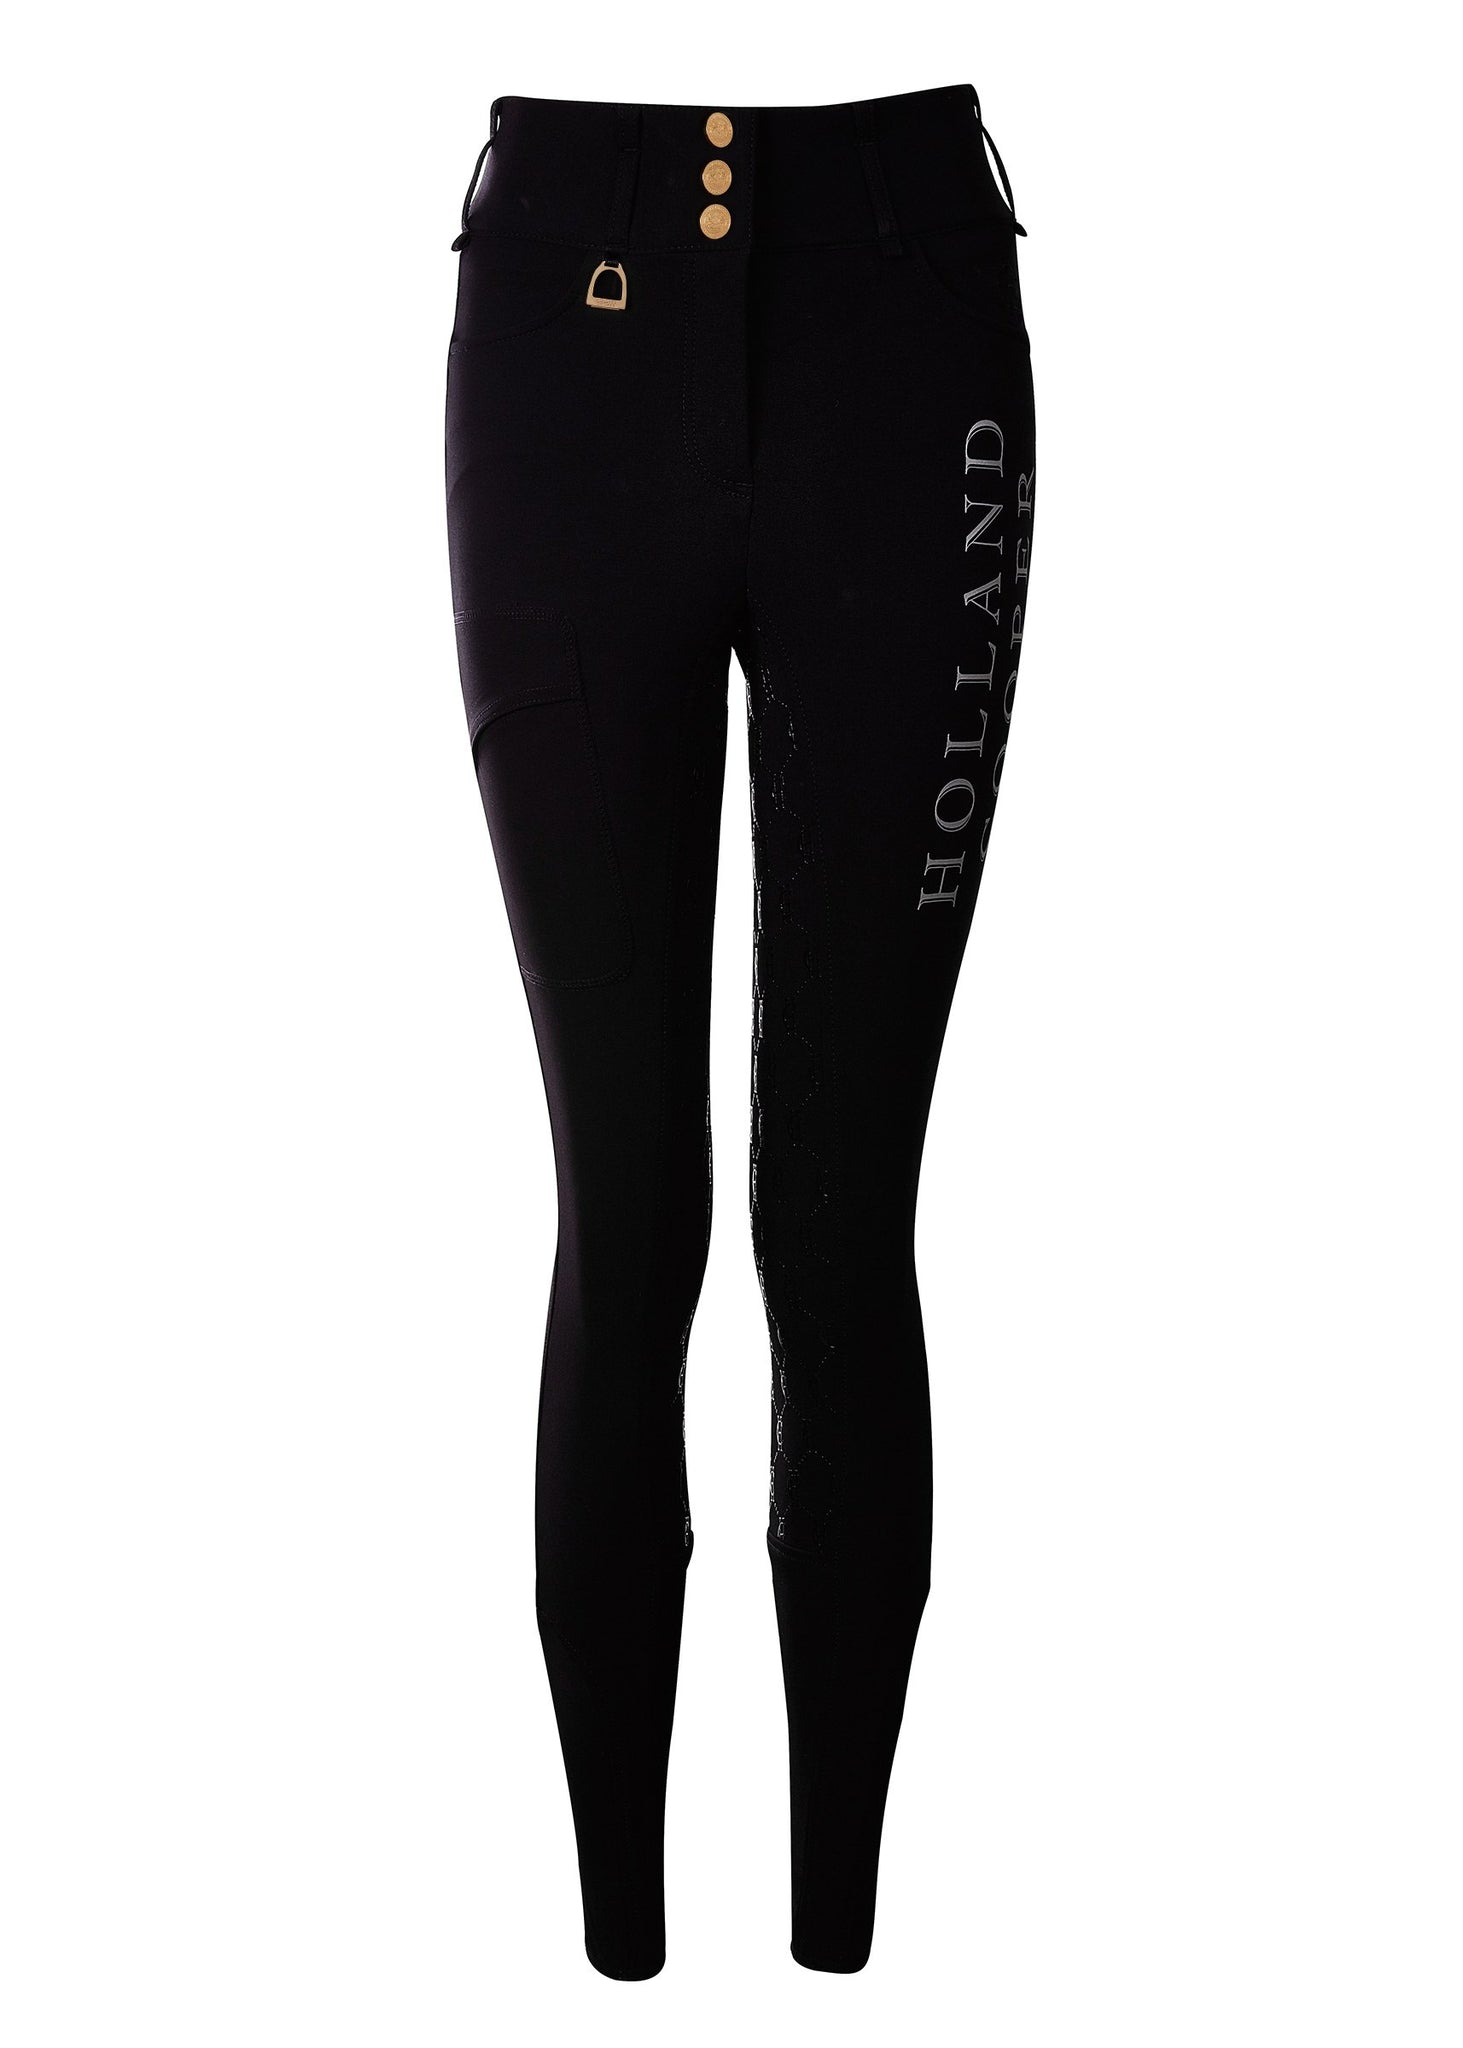 Ascot Breeches (Black Reflective)